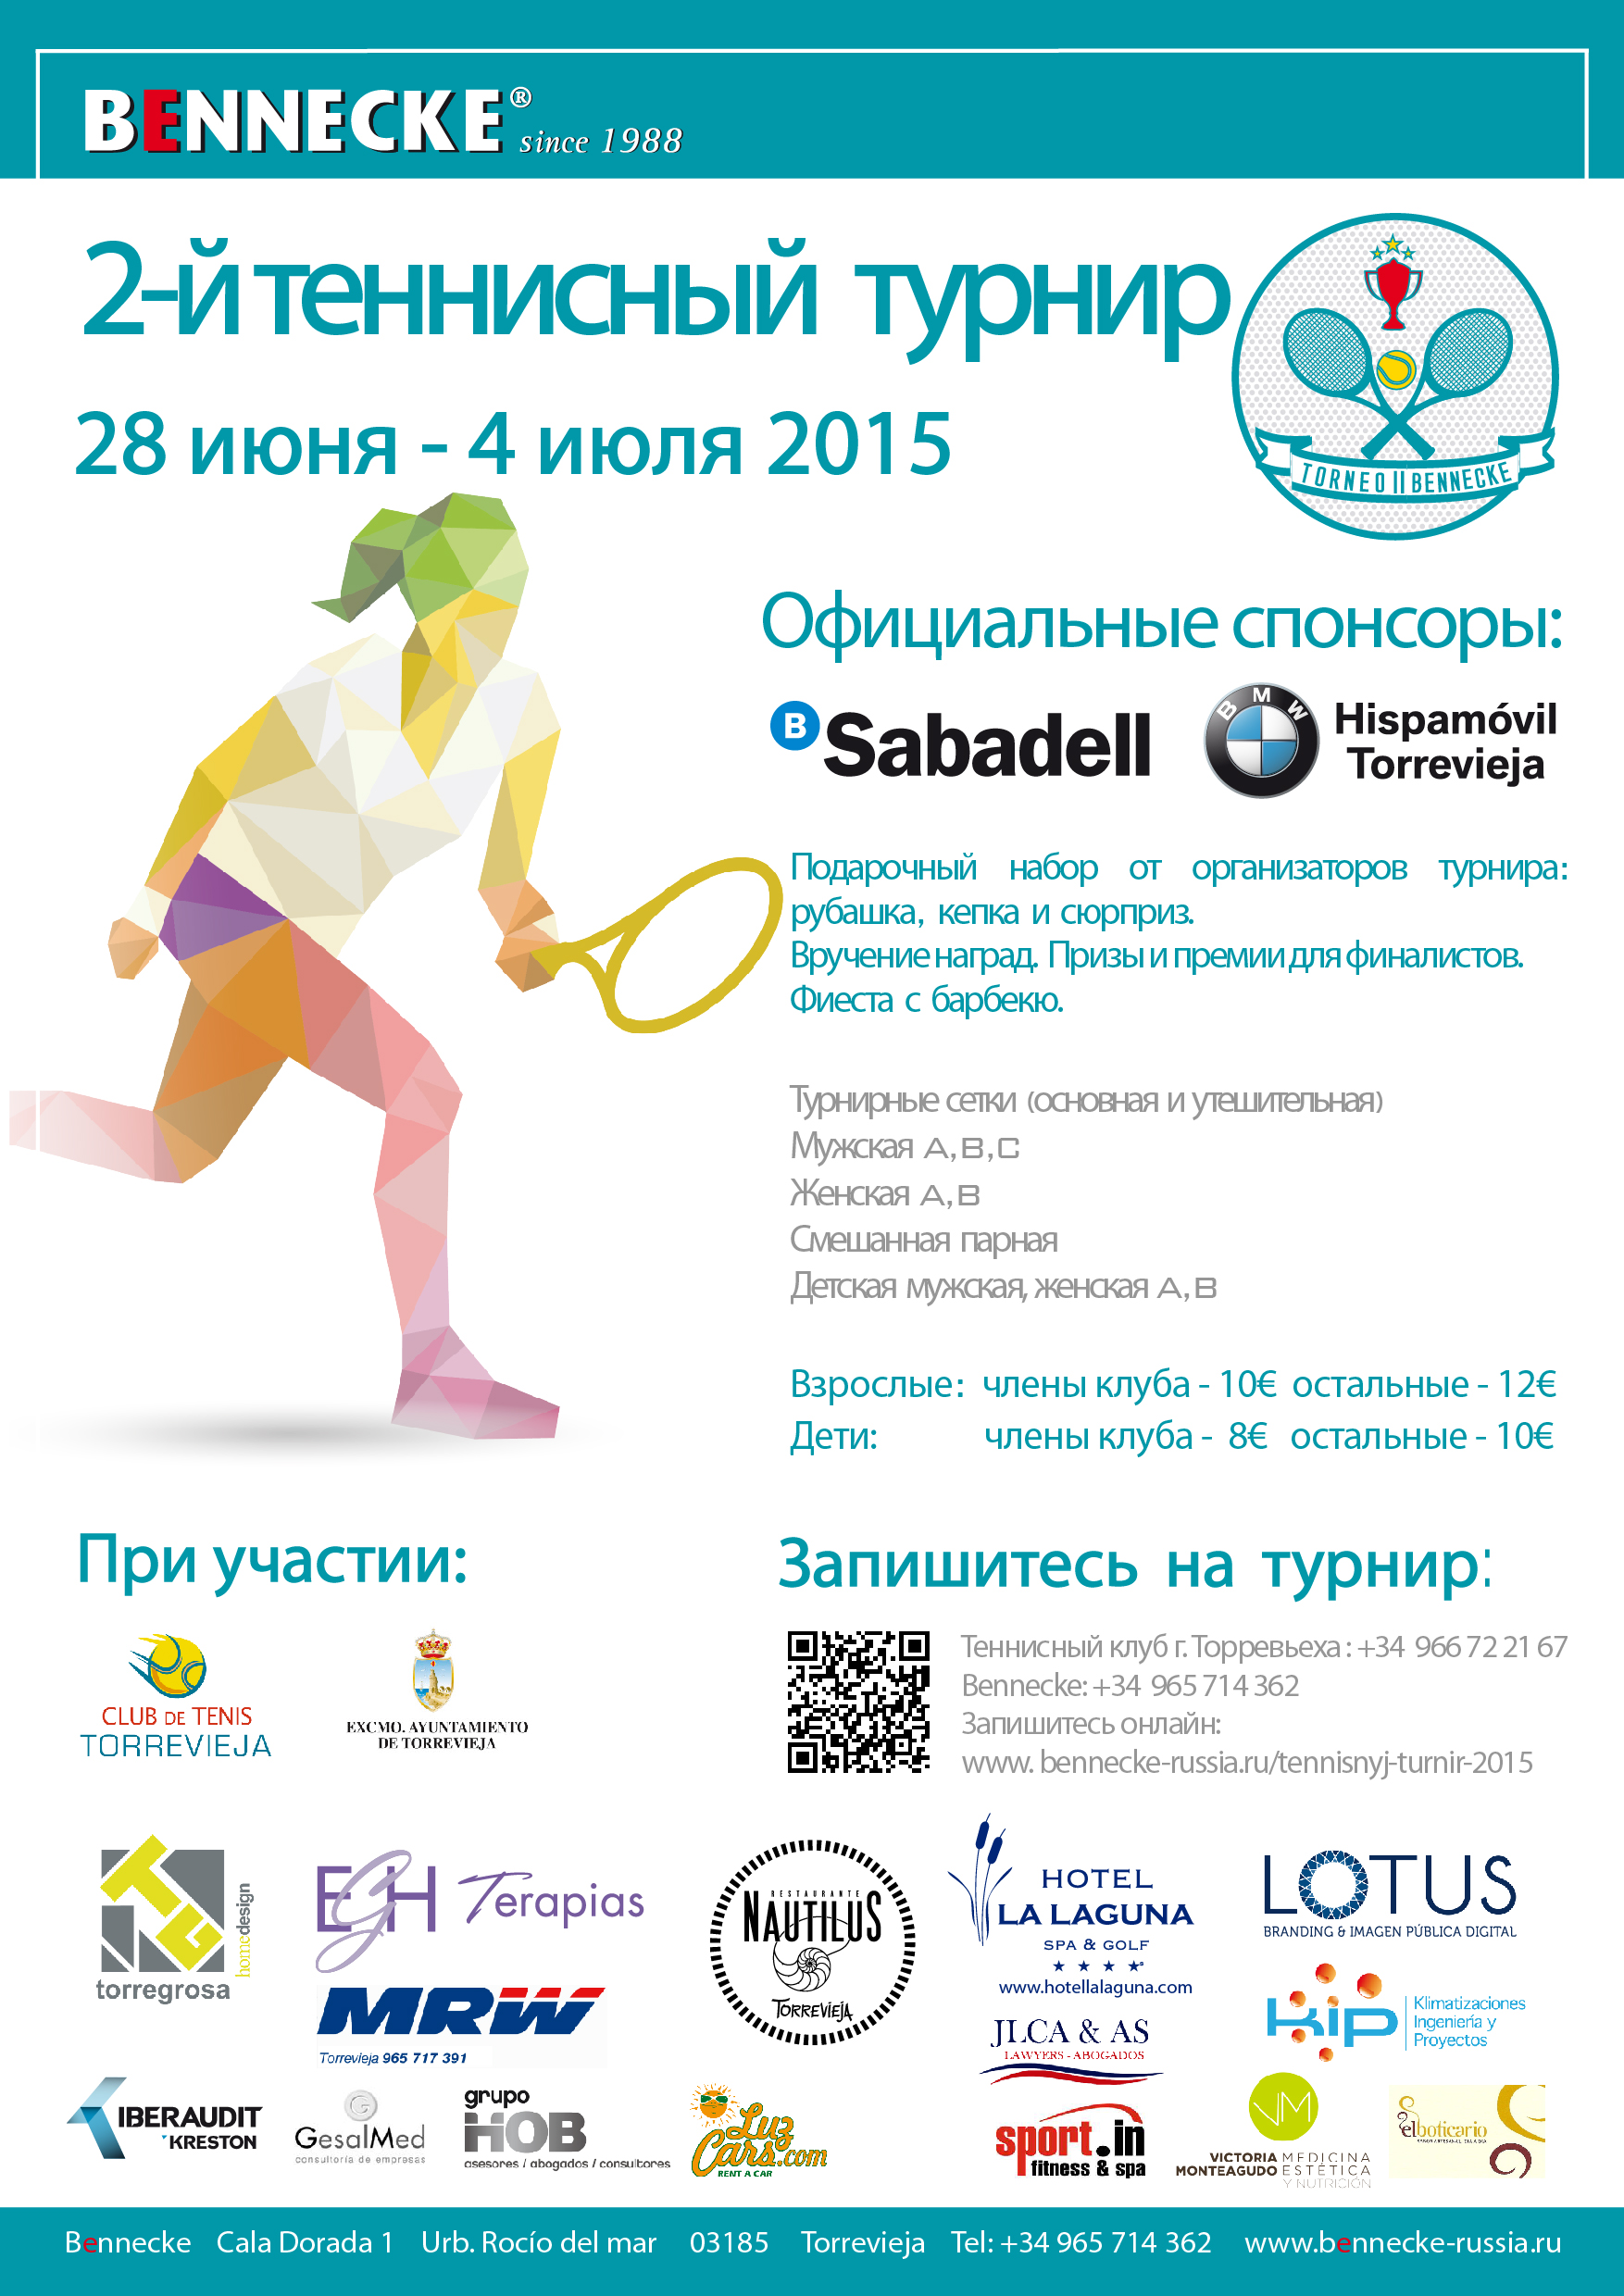 Tennisnyj turnir Bennecke 2015